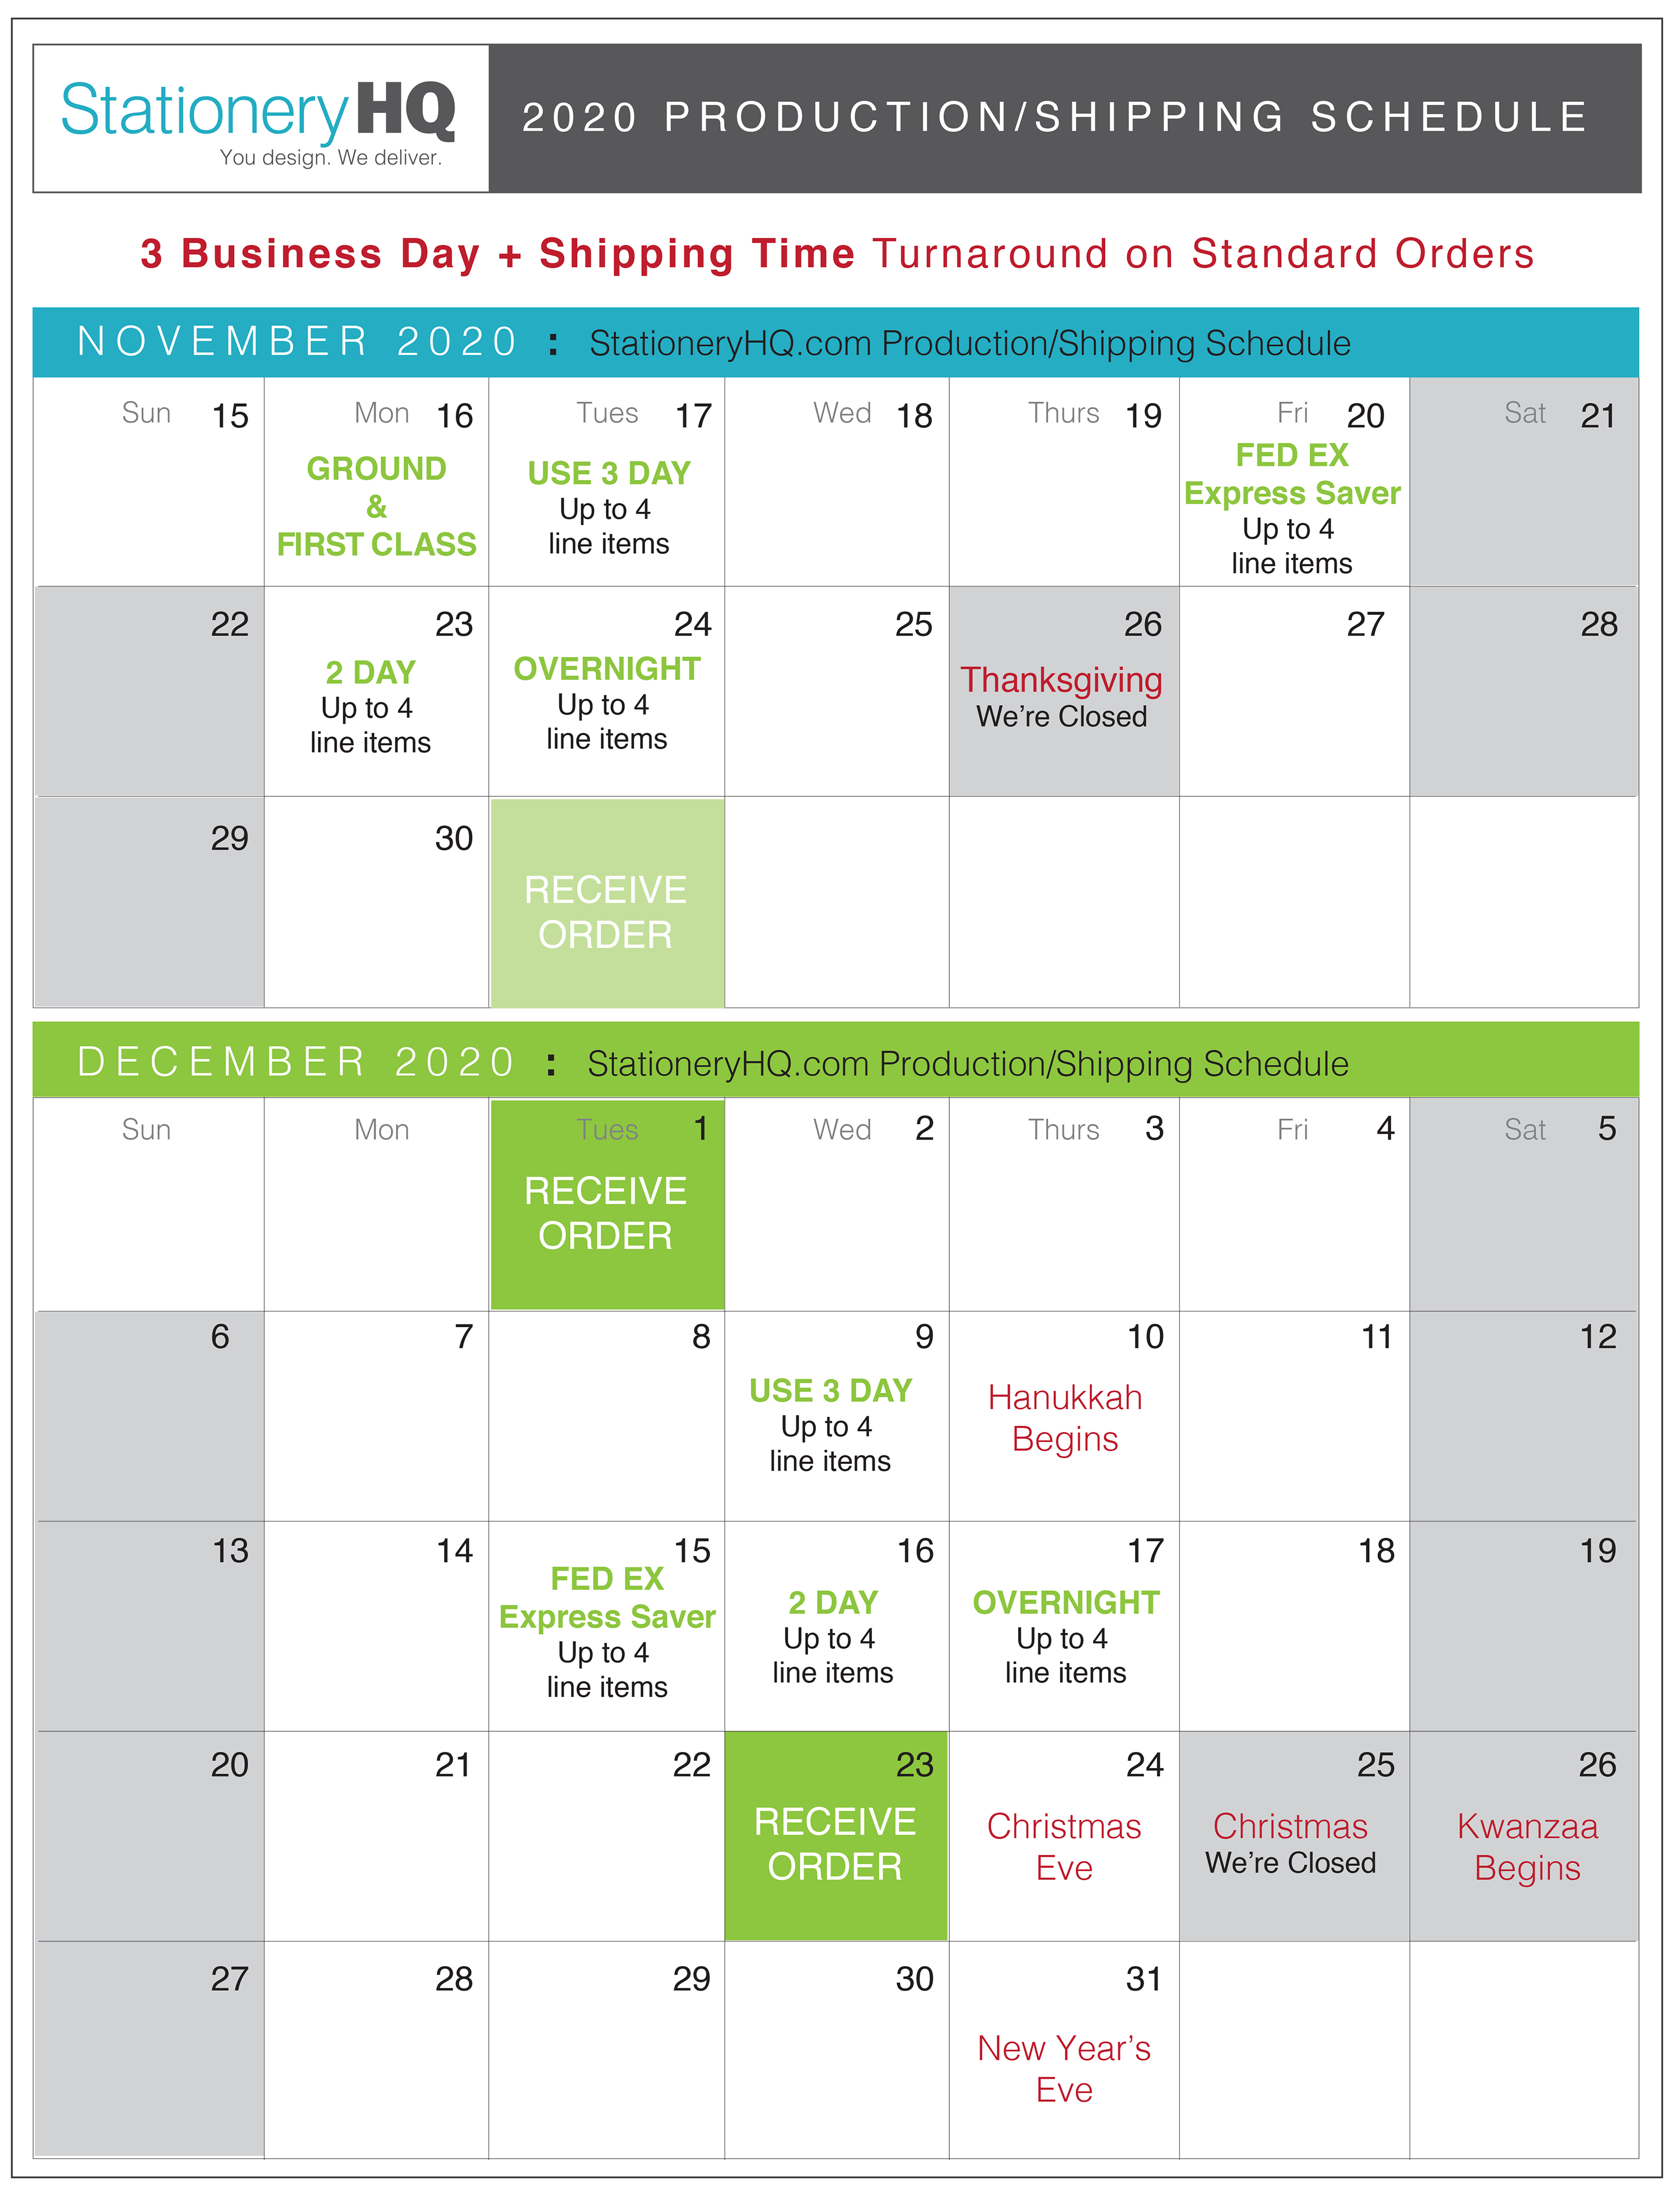 StationeryHQ Holiday Production/Shipping Schedule